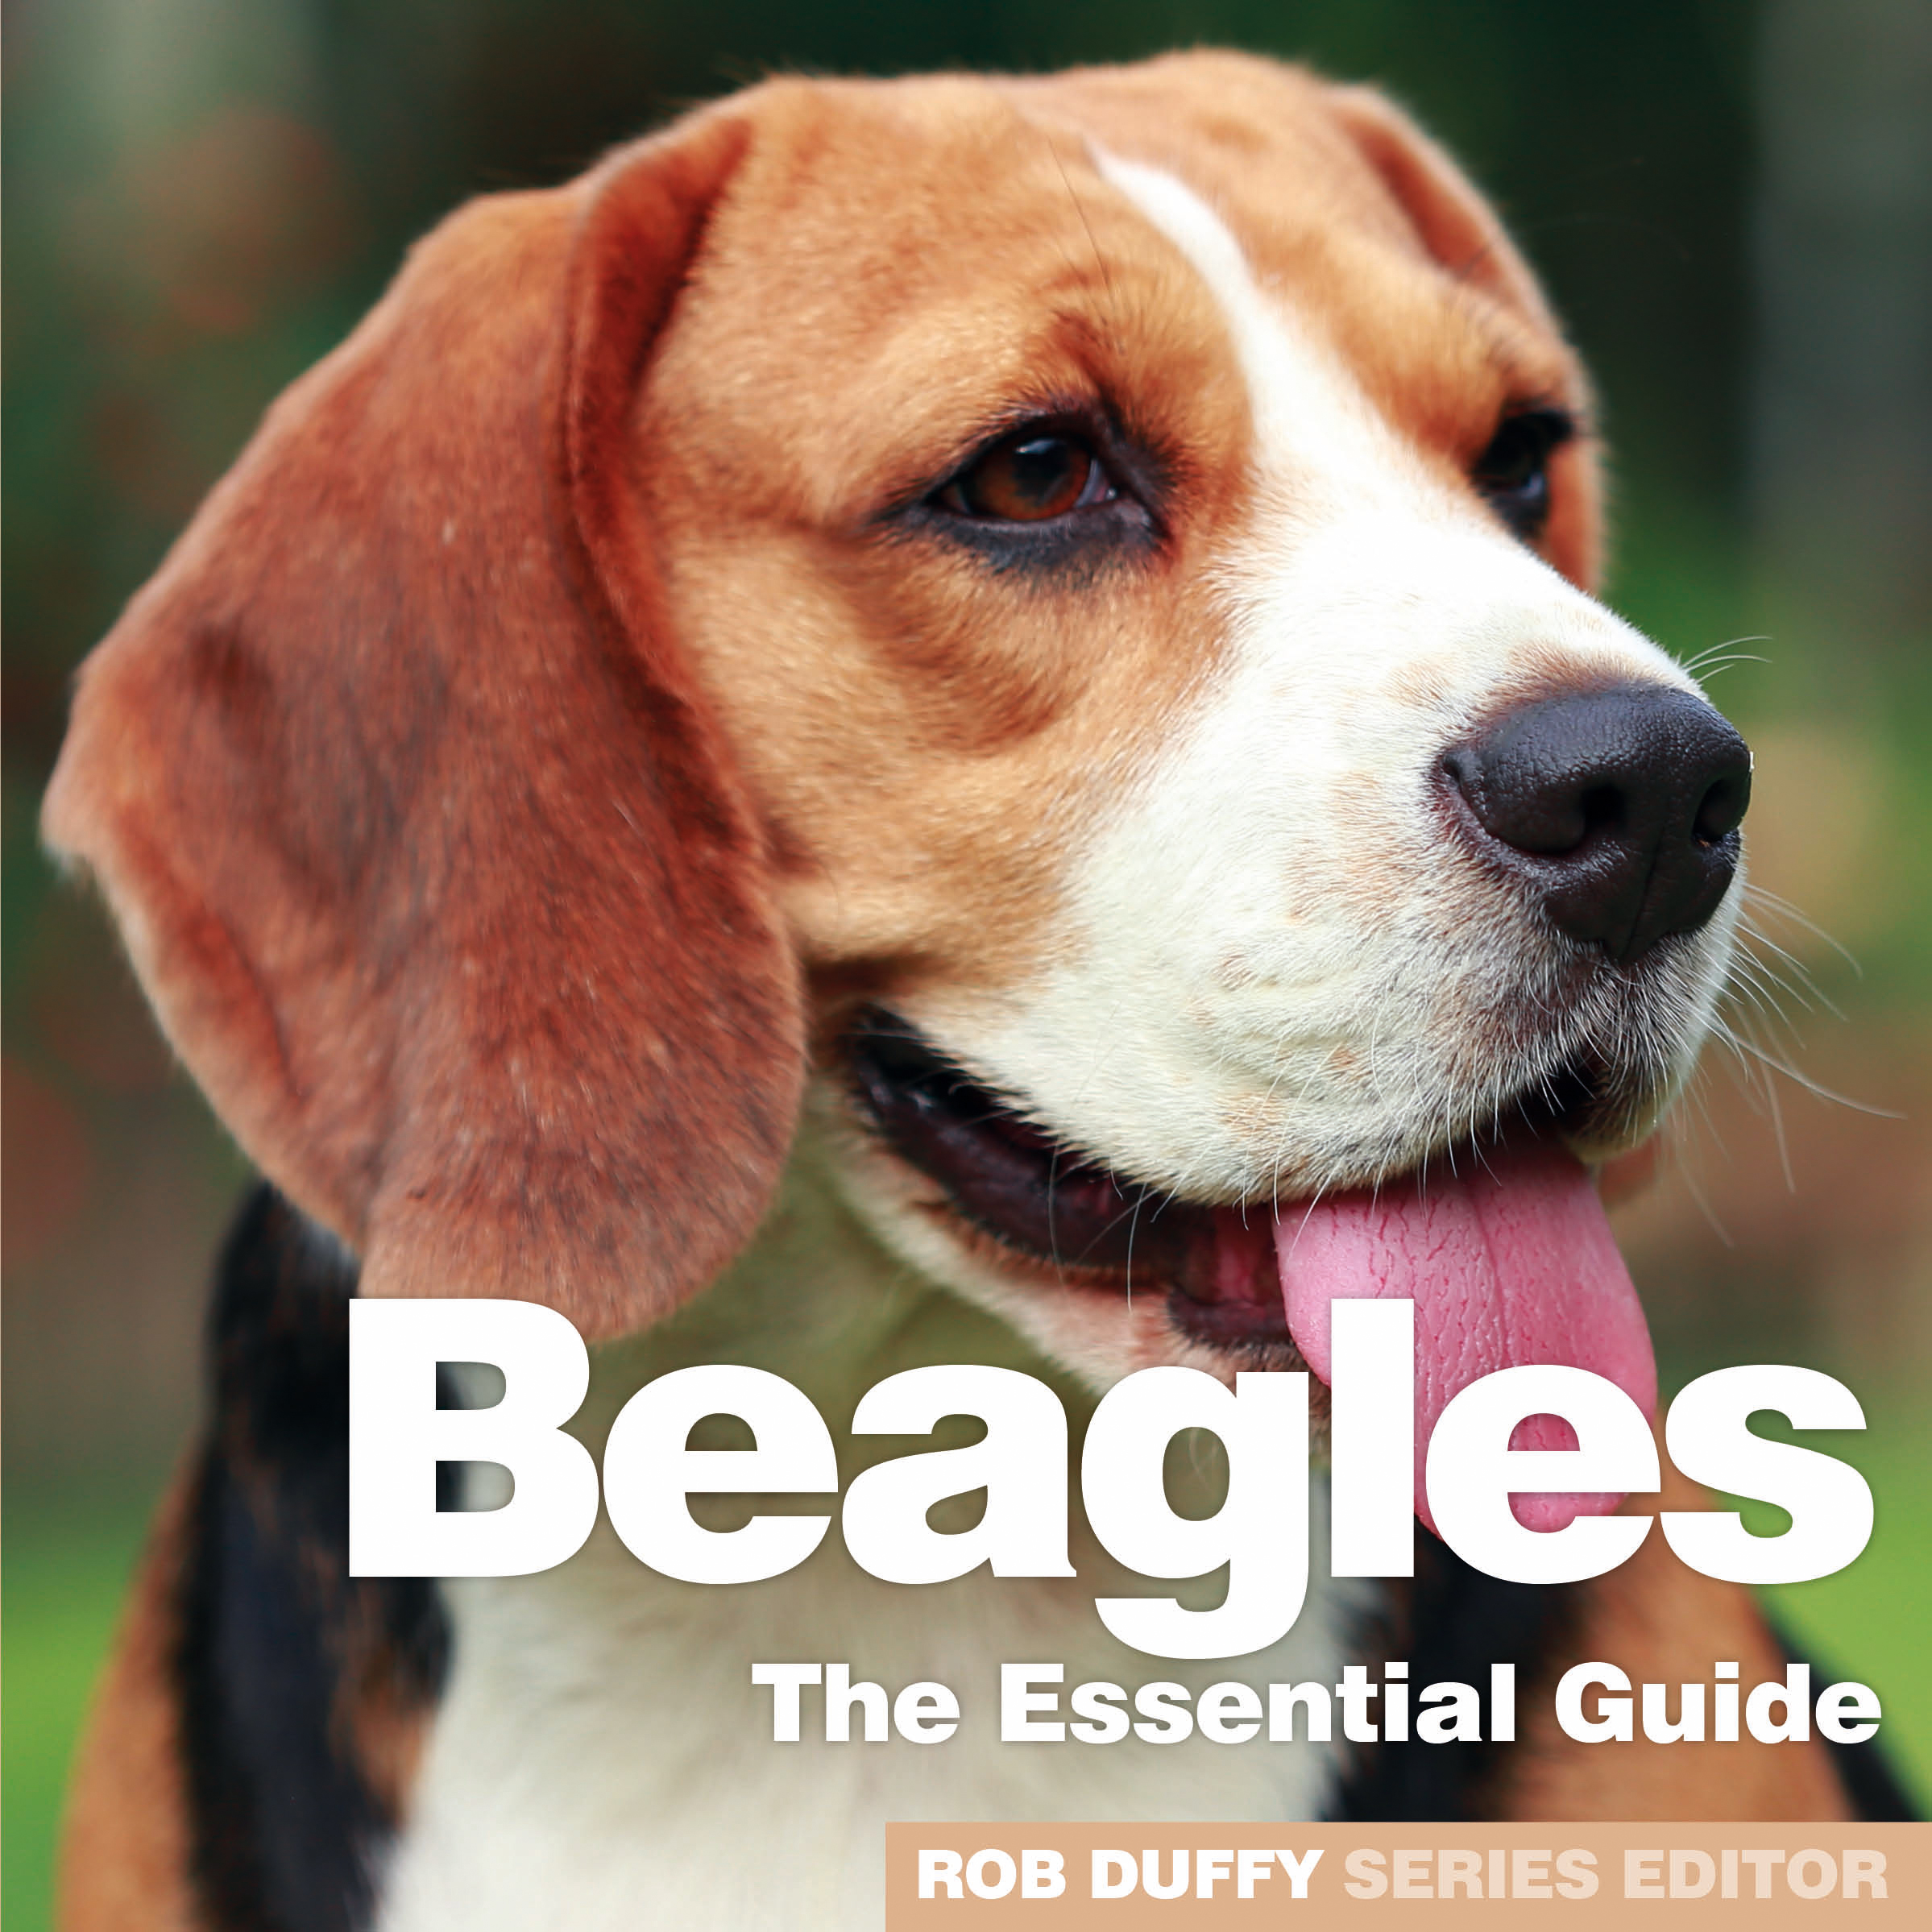 Beagles The Essential Guide